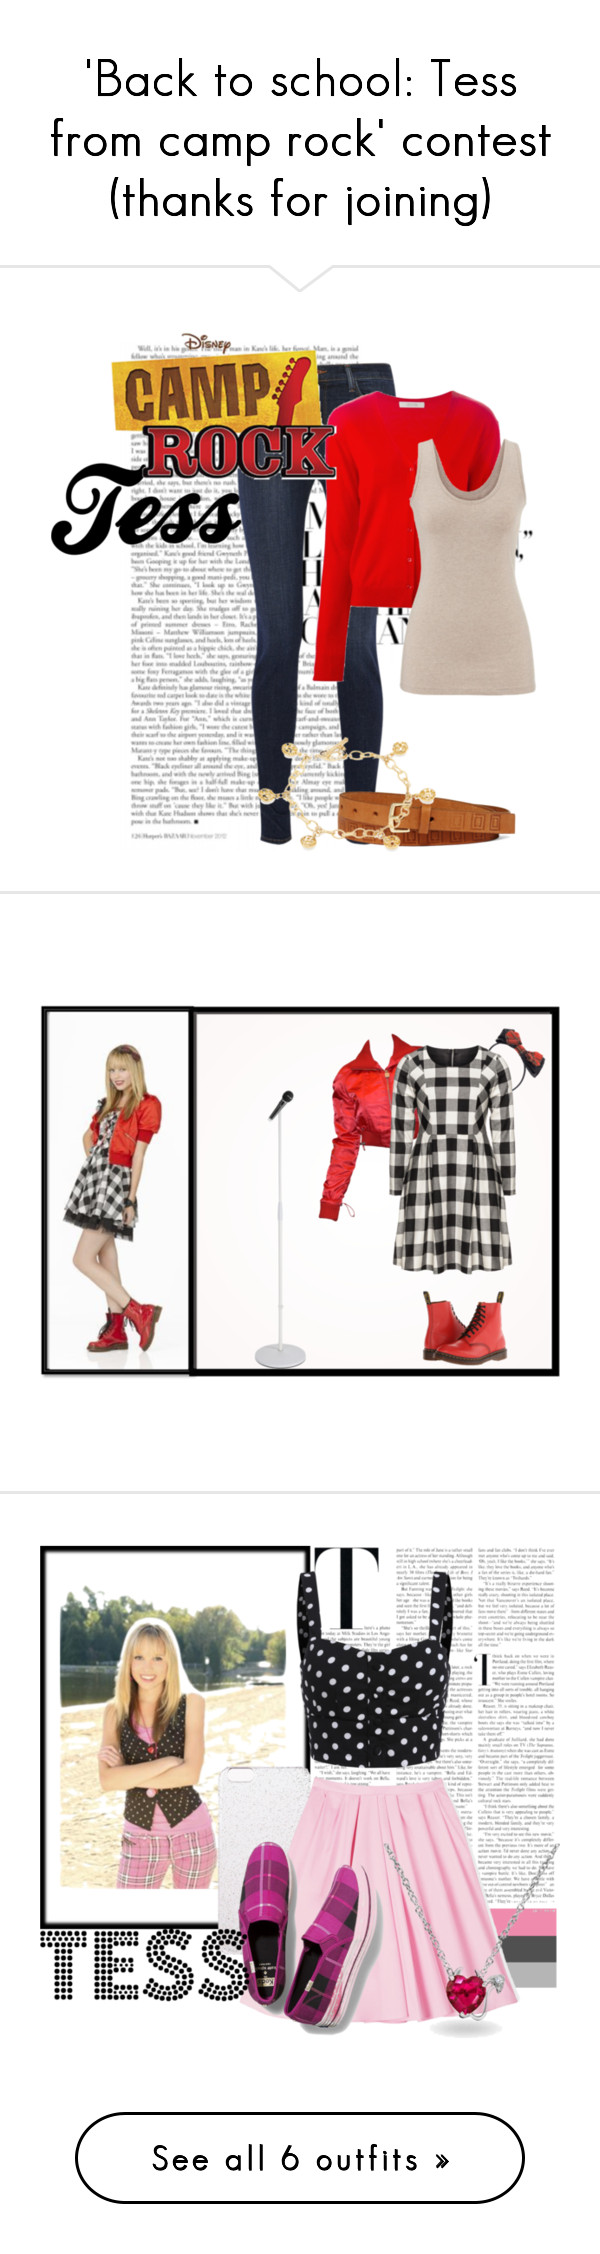 """""""'Back to school: Tess from camp rock' contest (thanks for joining)"""" by sarah-m-smith ❤ liked on Polyvore featuring J Brand, Dorothee Schumacher, maurices, Liz Claiborne, DeLatori, Camp, Chanel, Manon Baptiste, Dr. Martens and contest"""